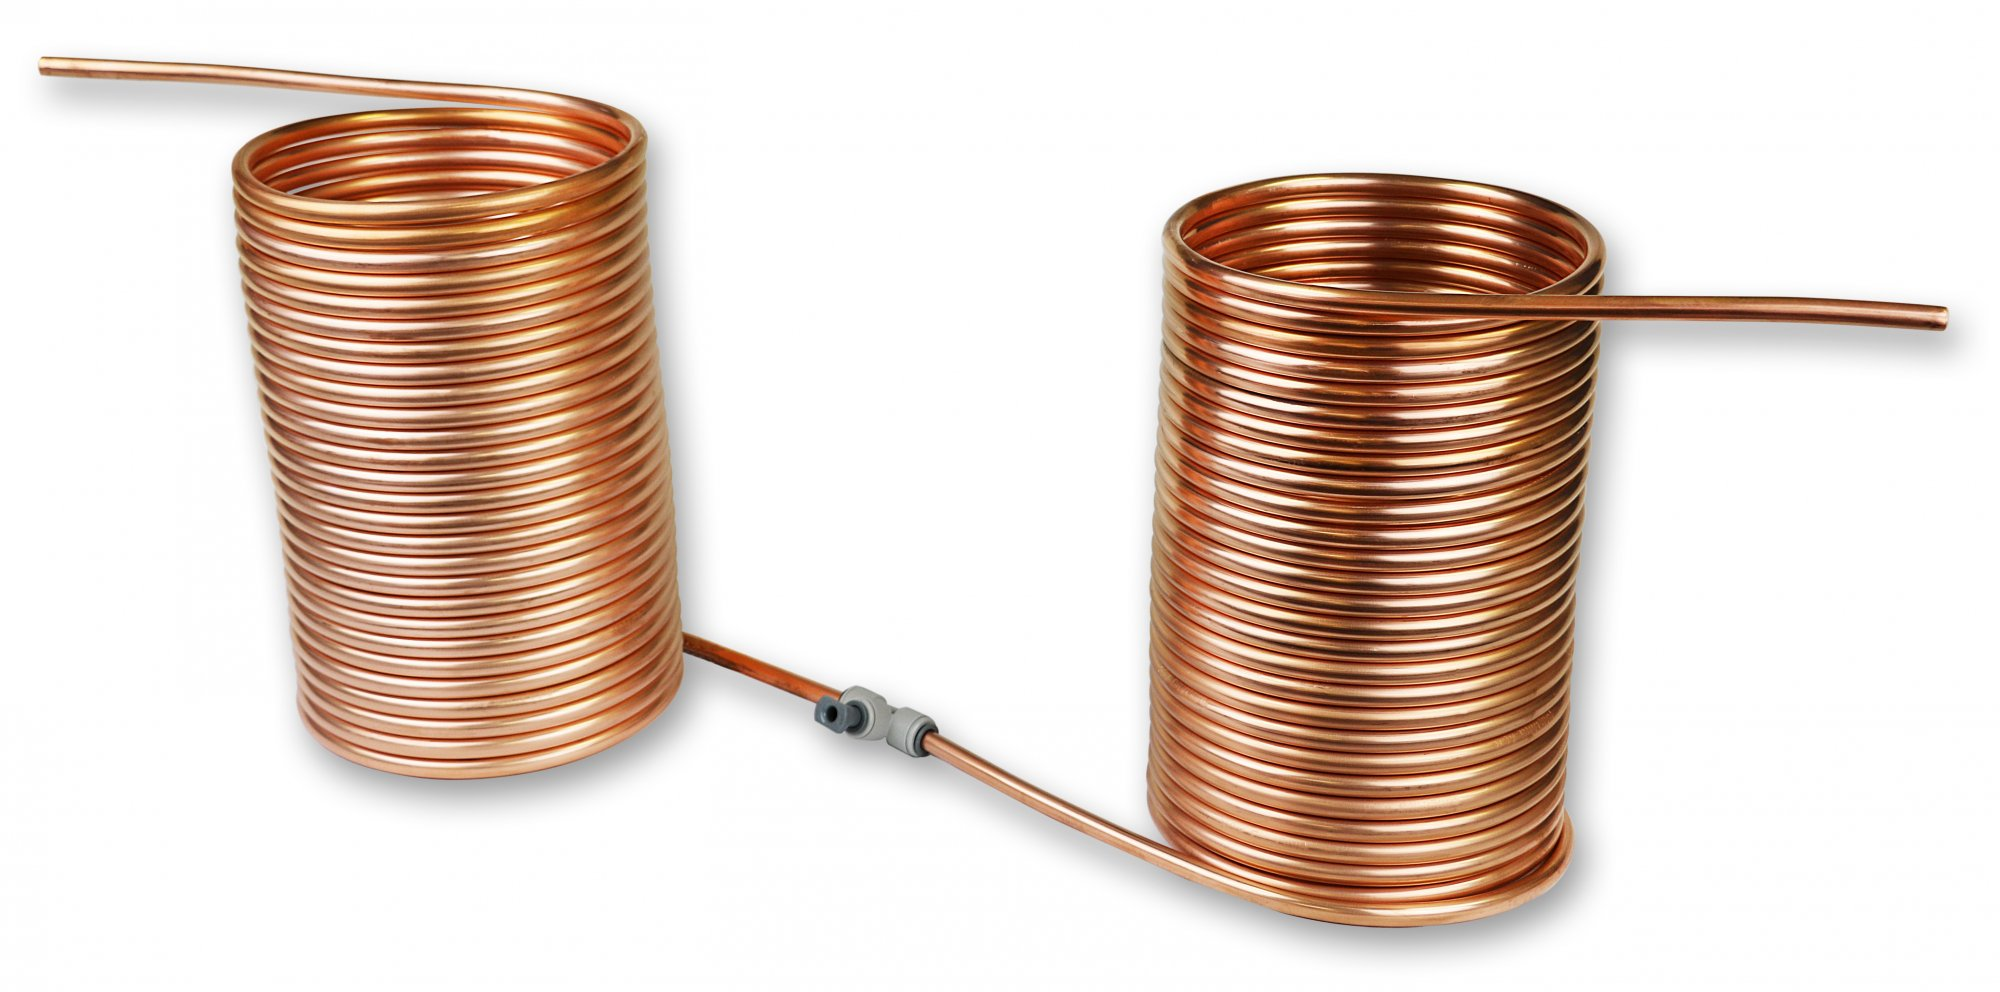 Chiller Coils Of Copper Wire Are Commonly Used In Electrical Inductors